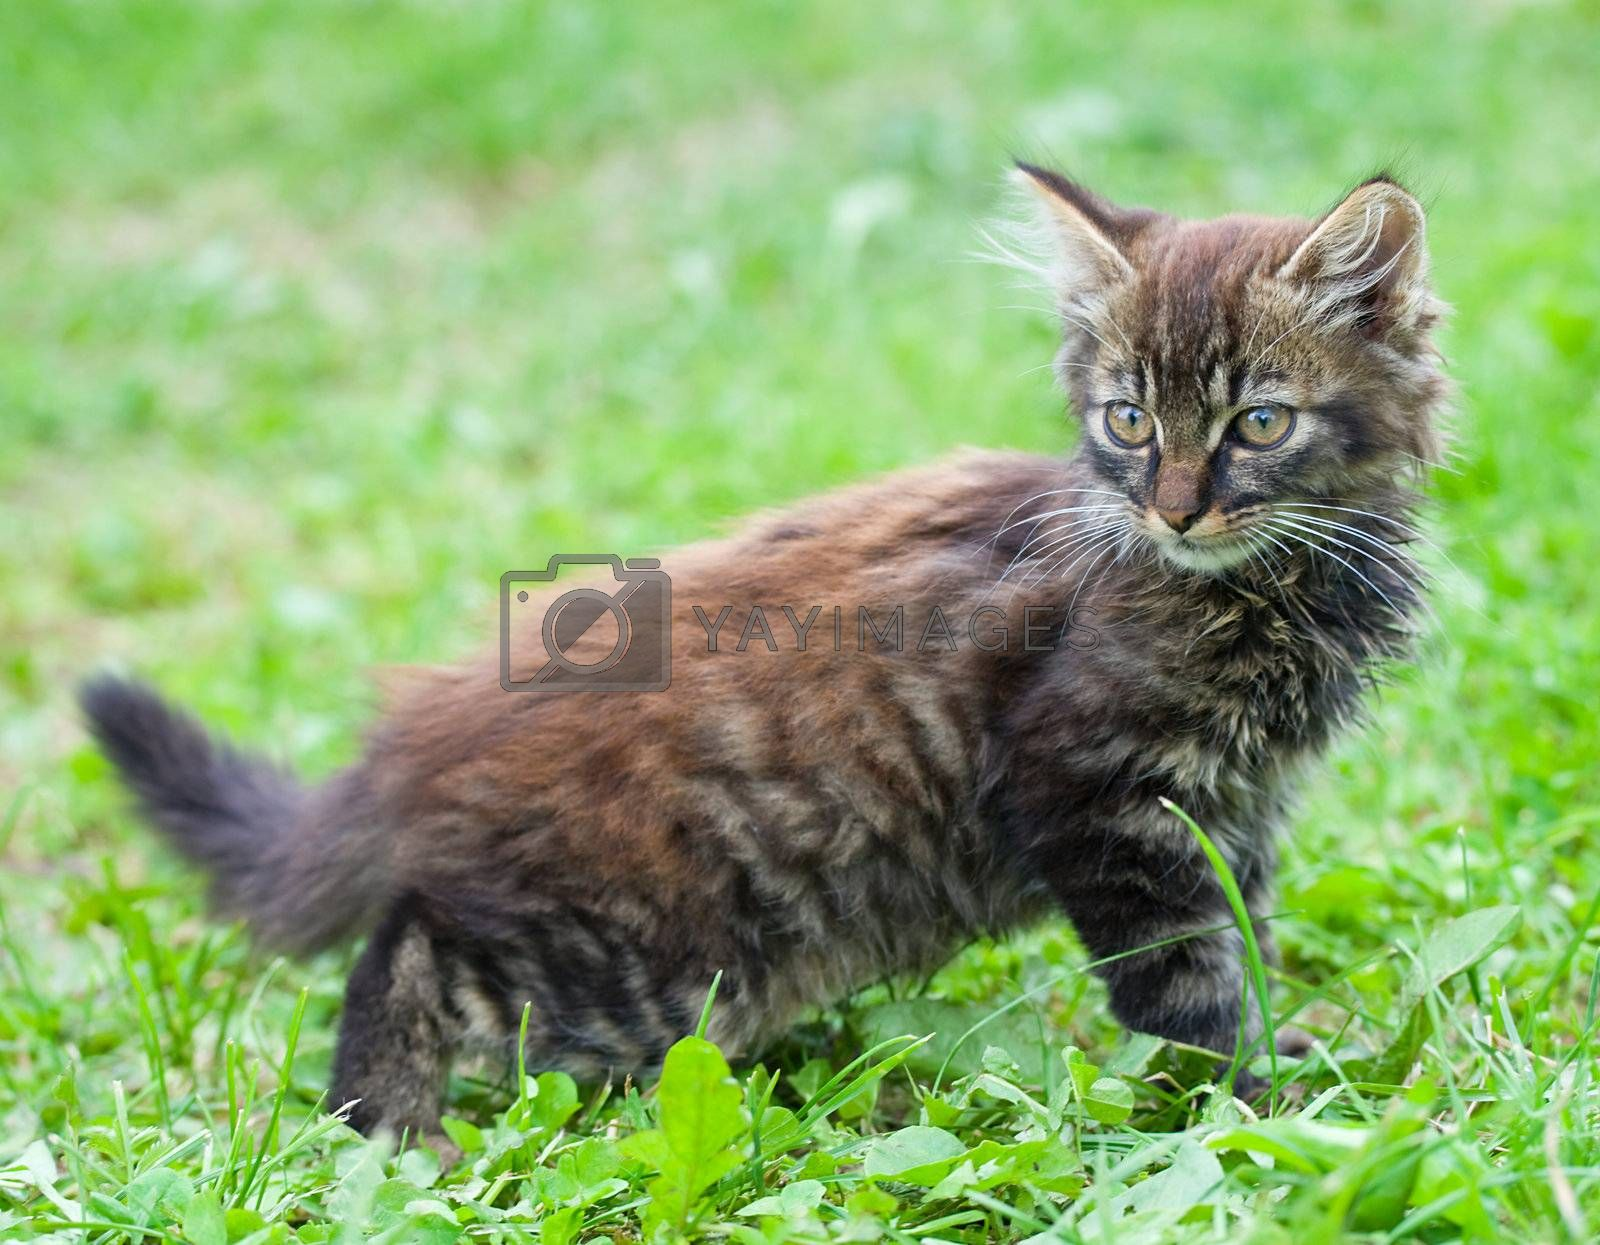 close-up small funny kitten on green grass background